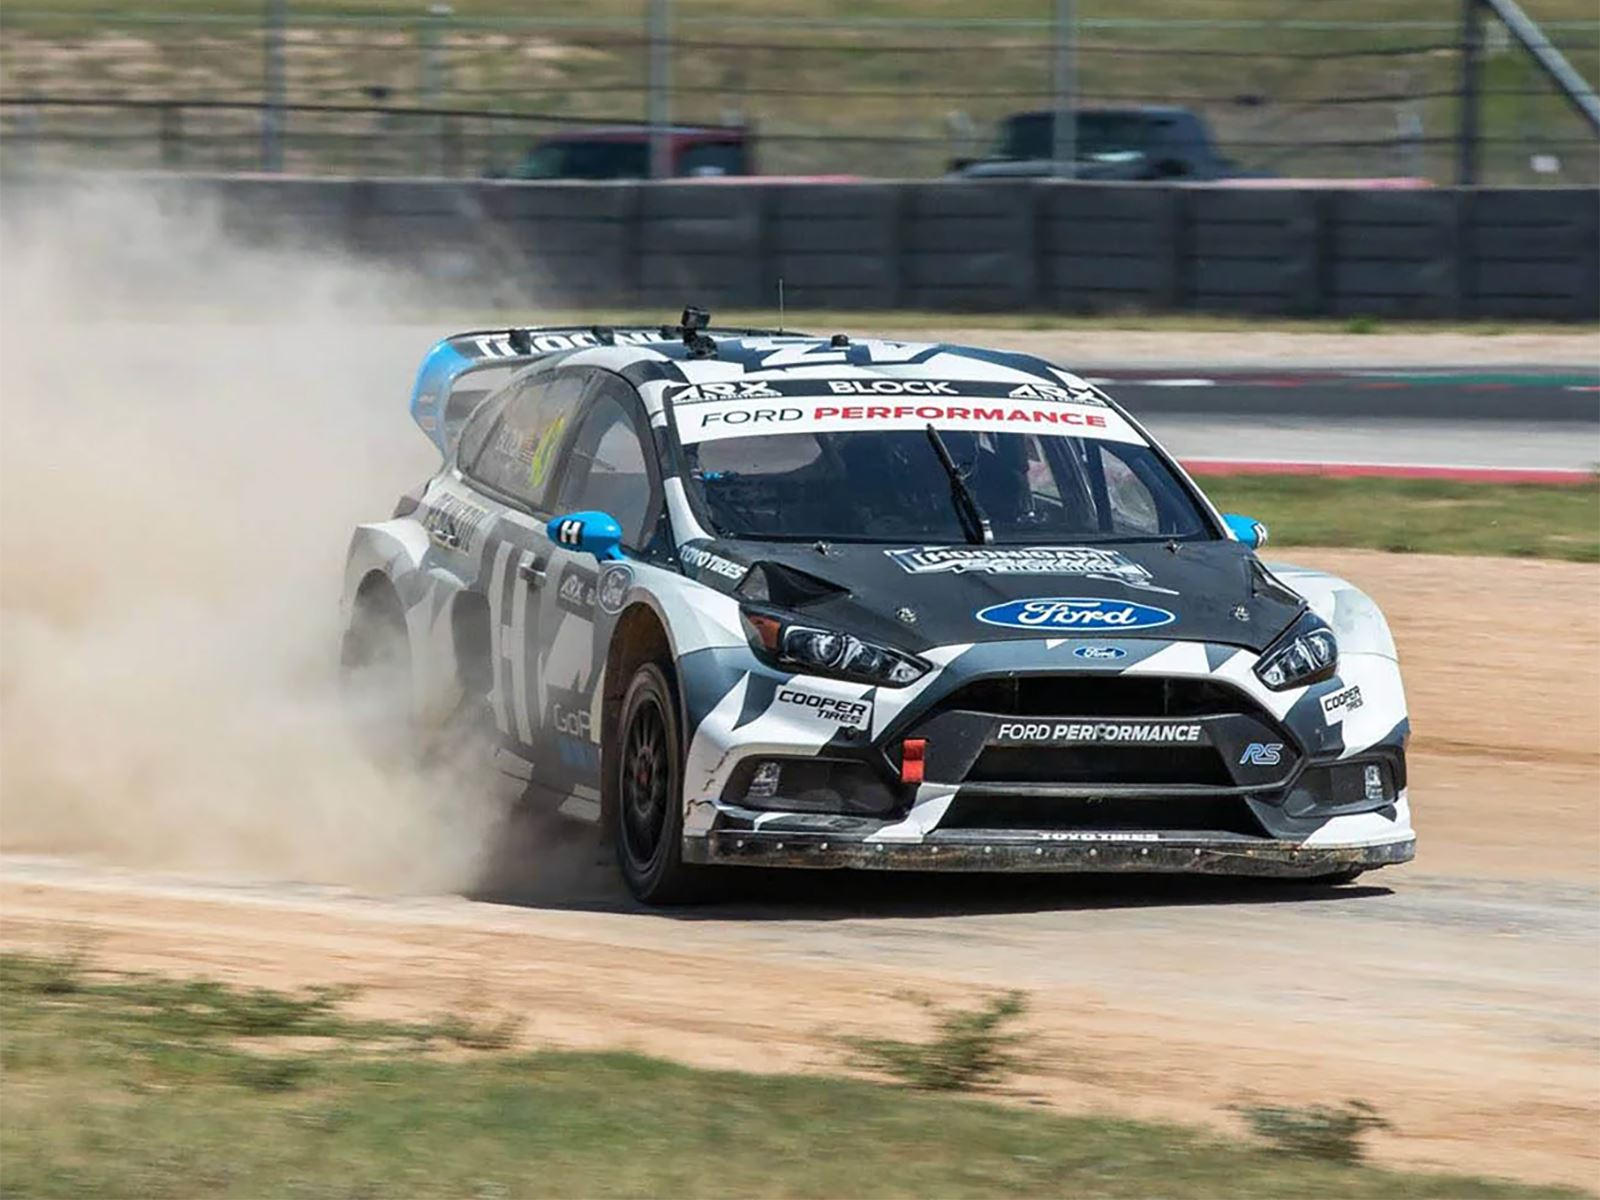 Ken Block Reveals New 600 Hp Ford Focus Rs Rx Rallycross Car Carbuzz